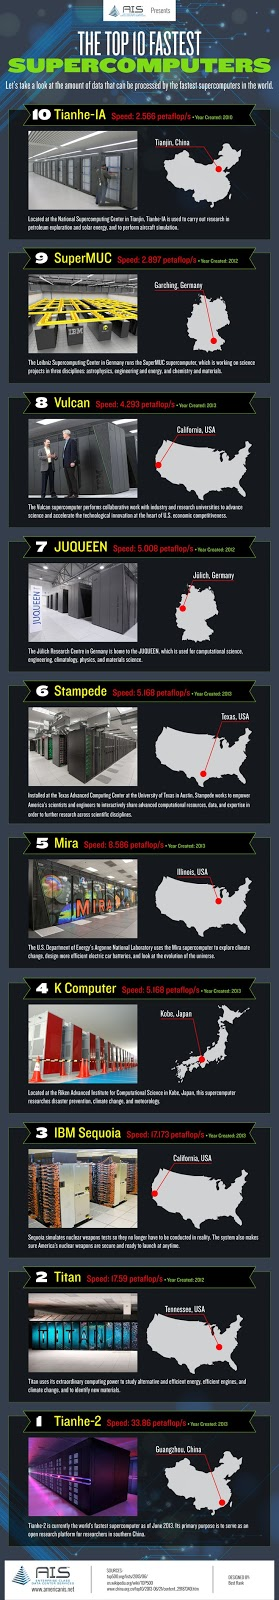 Supercomputers infographic